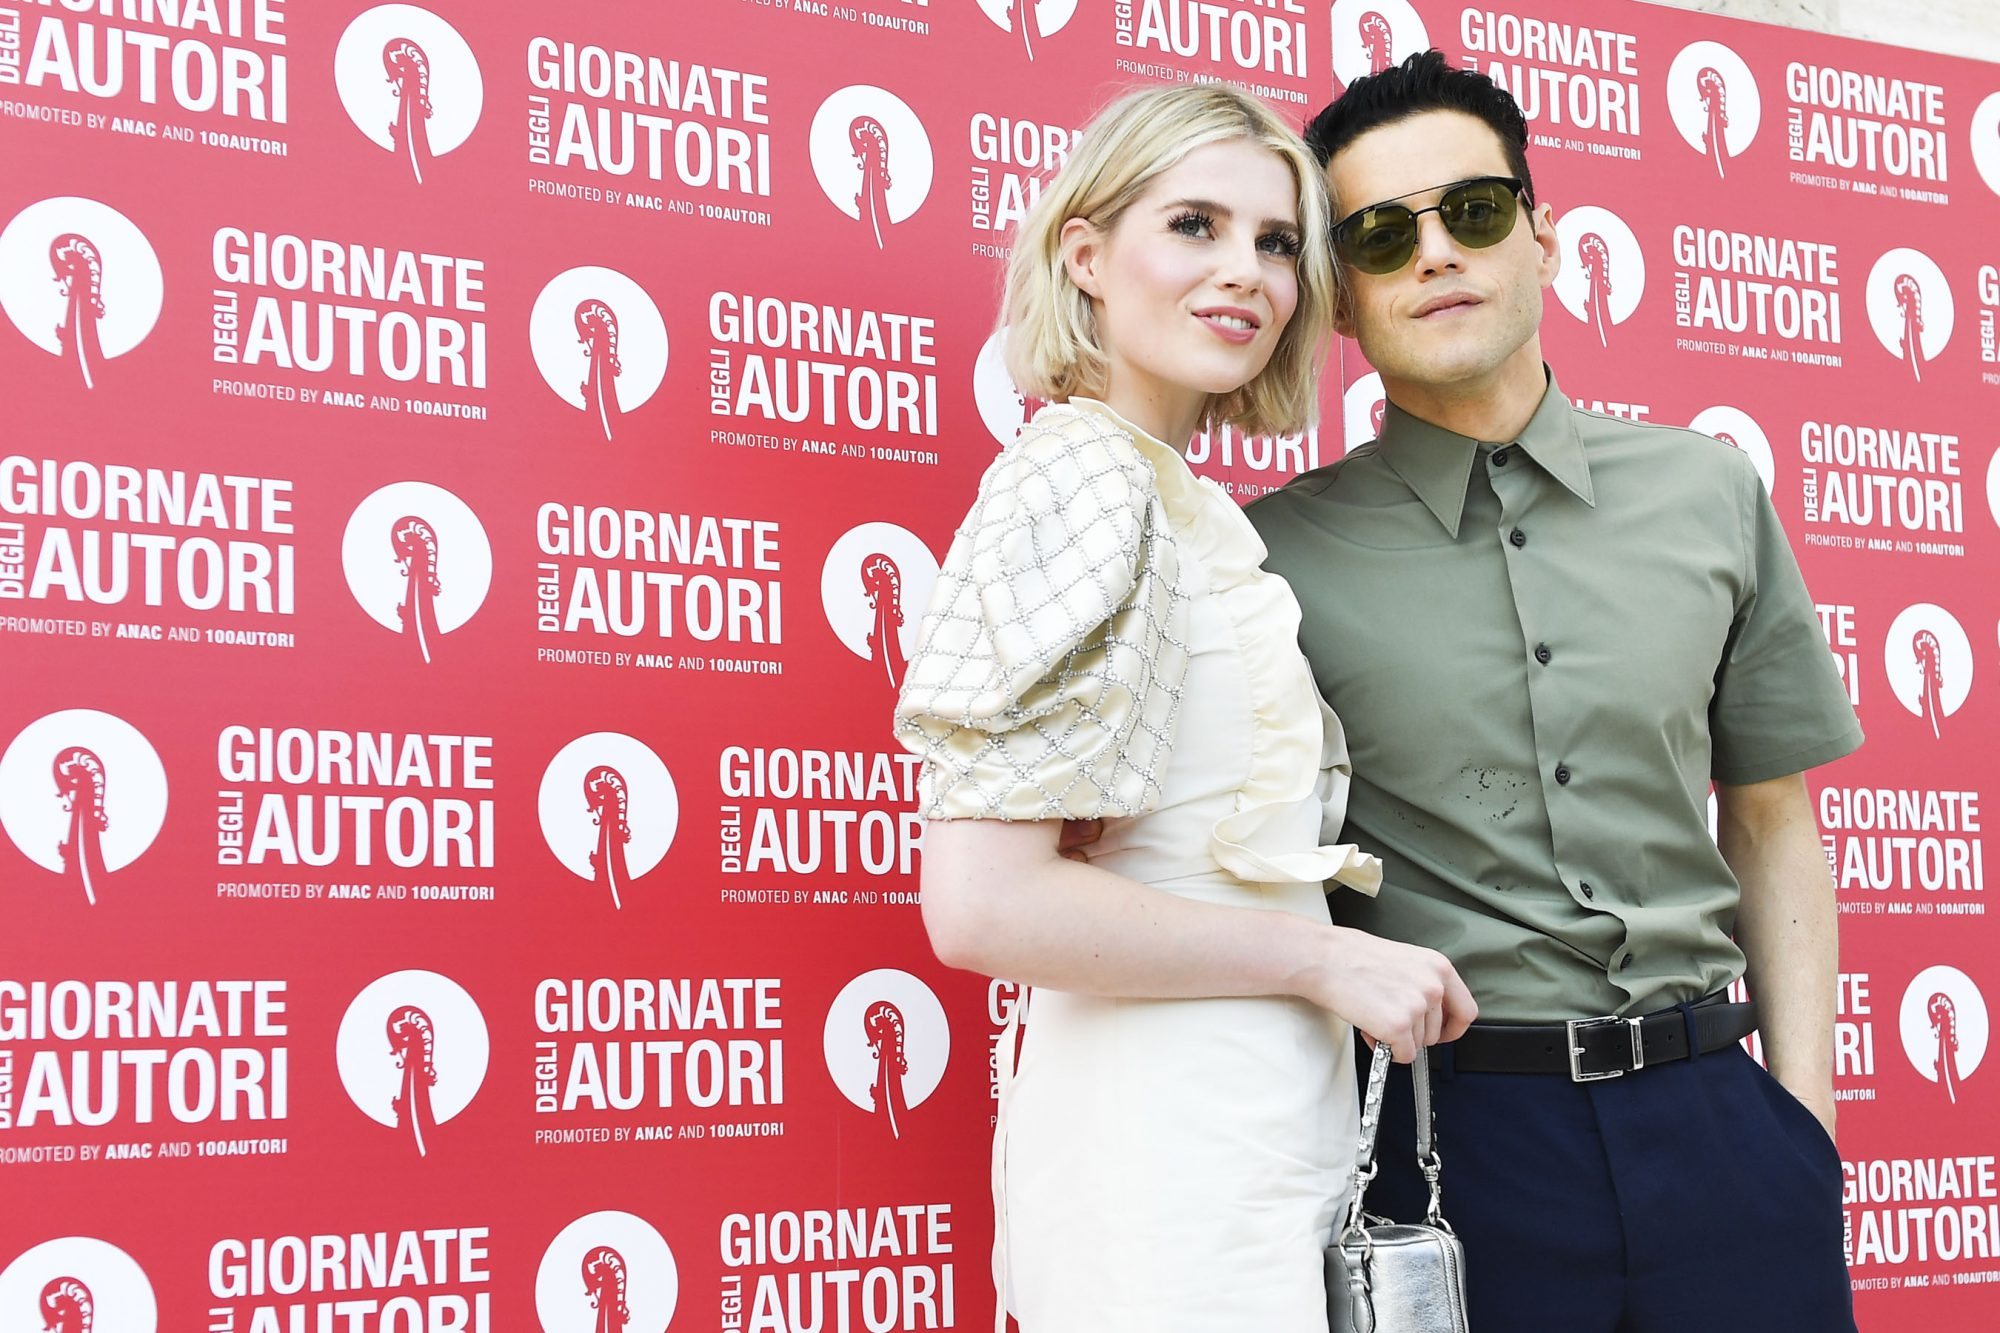 VENICE, ITALY - SEPTEMBER 01: Rami Malek and Lucy Boynton are seen arriving at the 76th Venice Film Festival on September 01, 2019 in Venice, Italy. (Photo by Jacopo Raule/GC Images,)